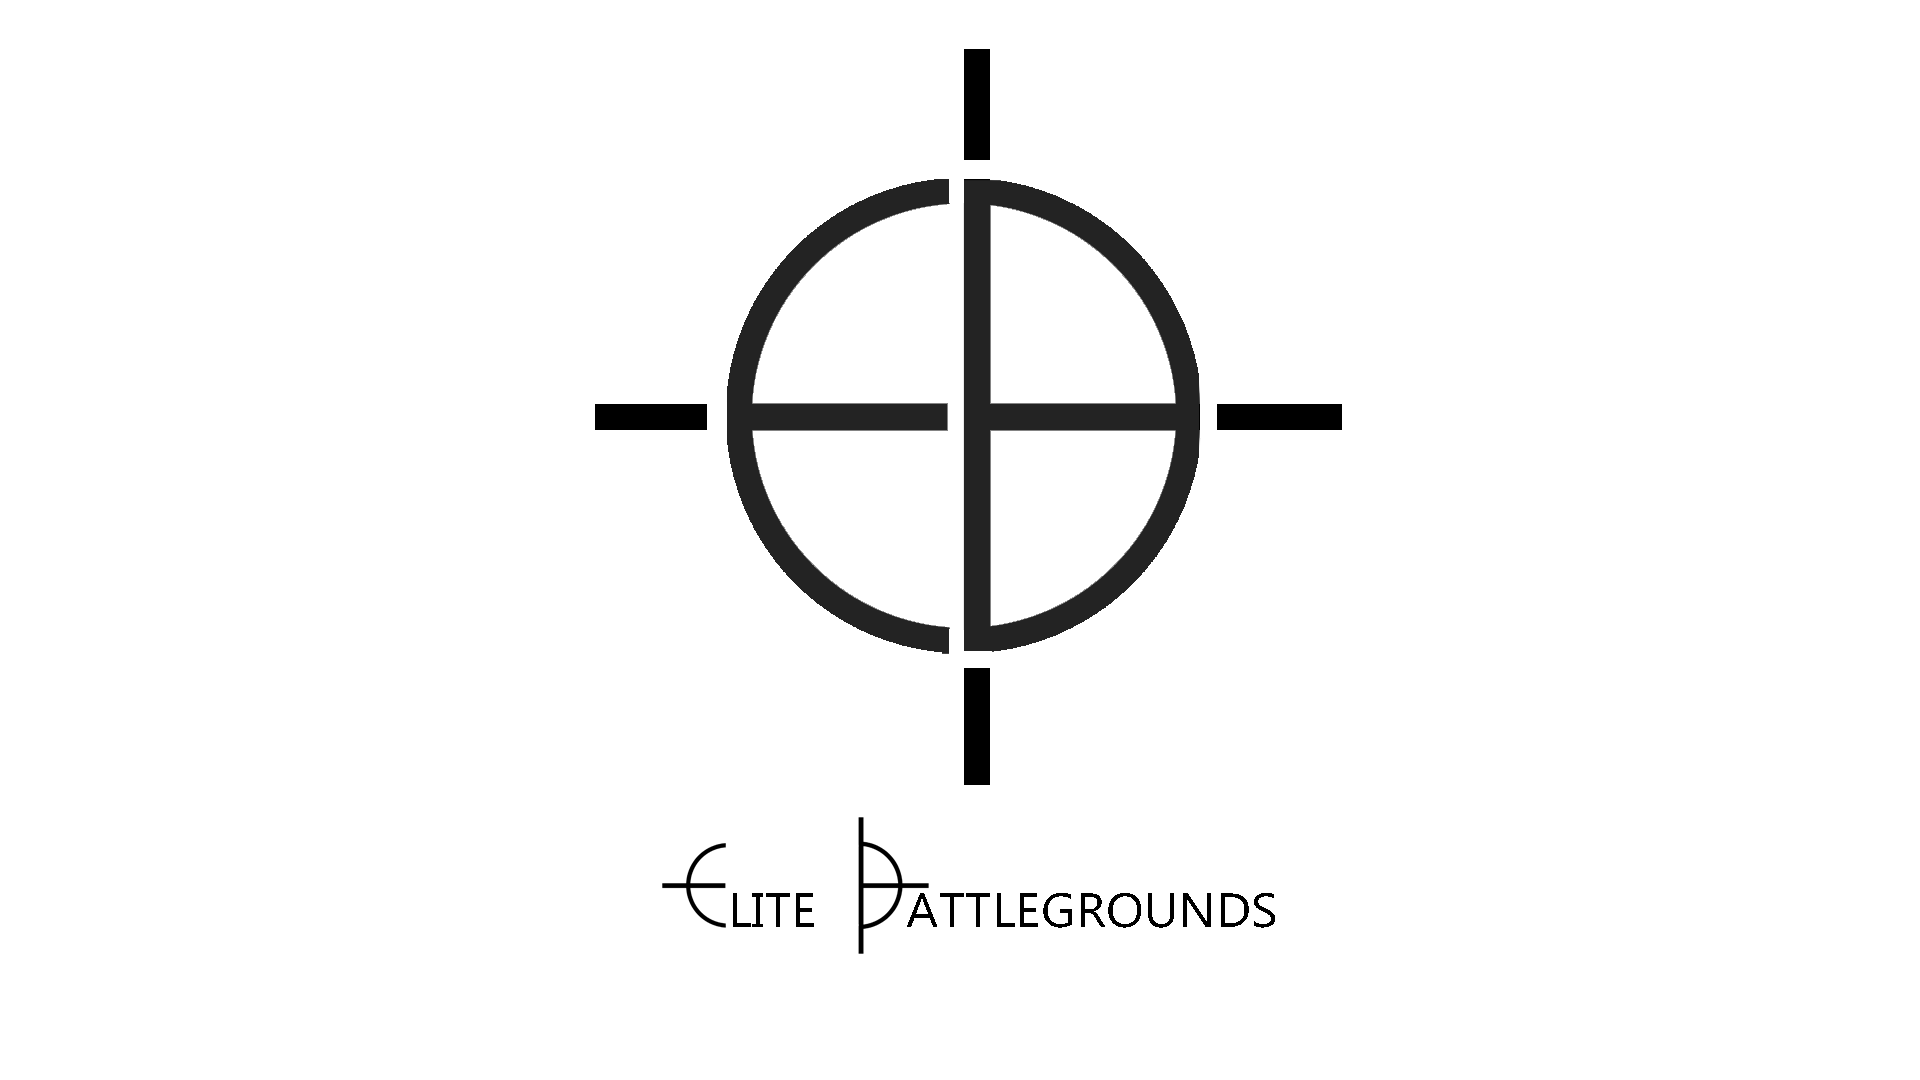 Logo Design by Sam Hedrén - Entry No. 64 in the Logo Design Contest Creative Logo Design for Elite Battlegrounds.